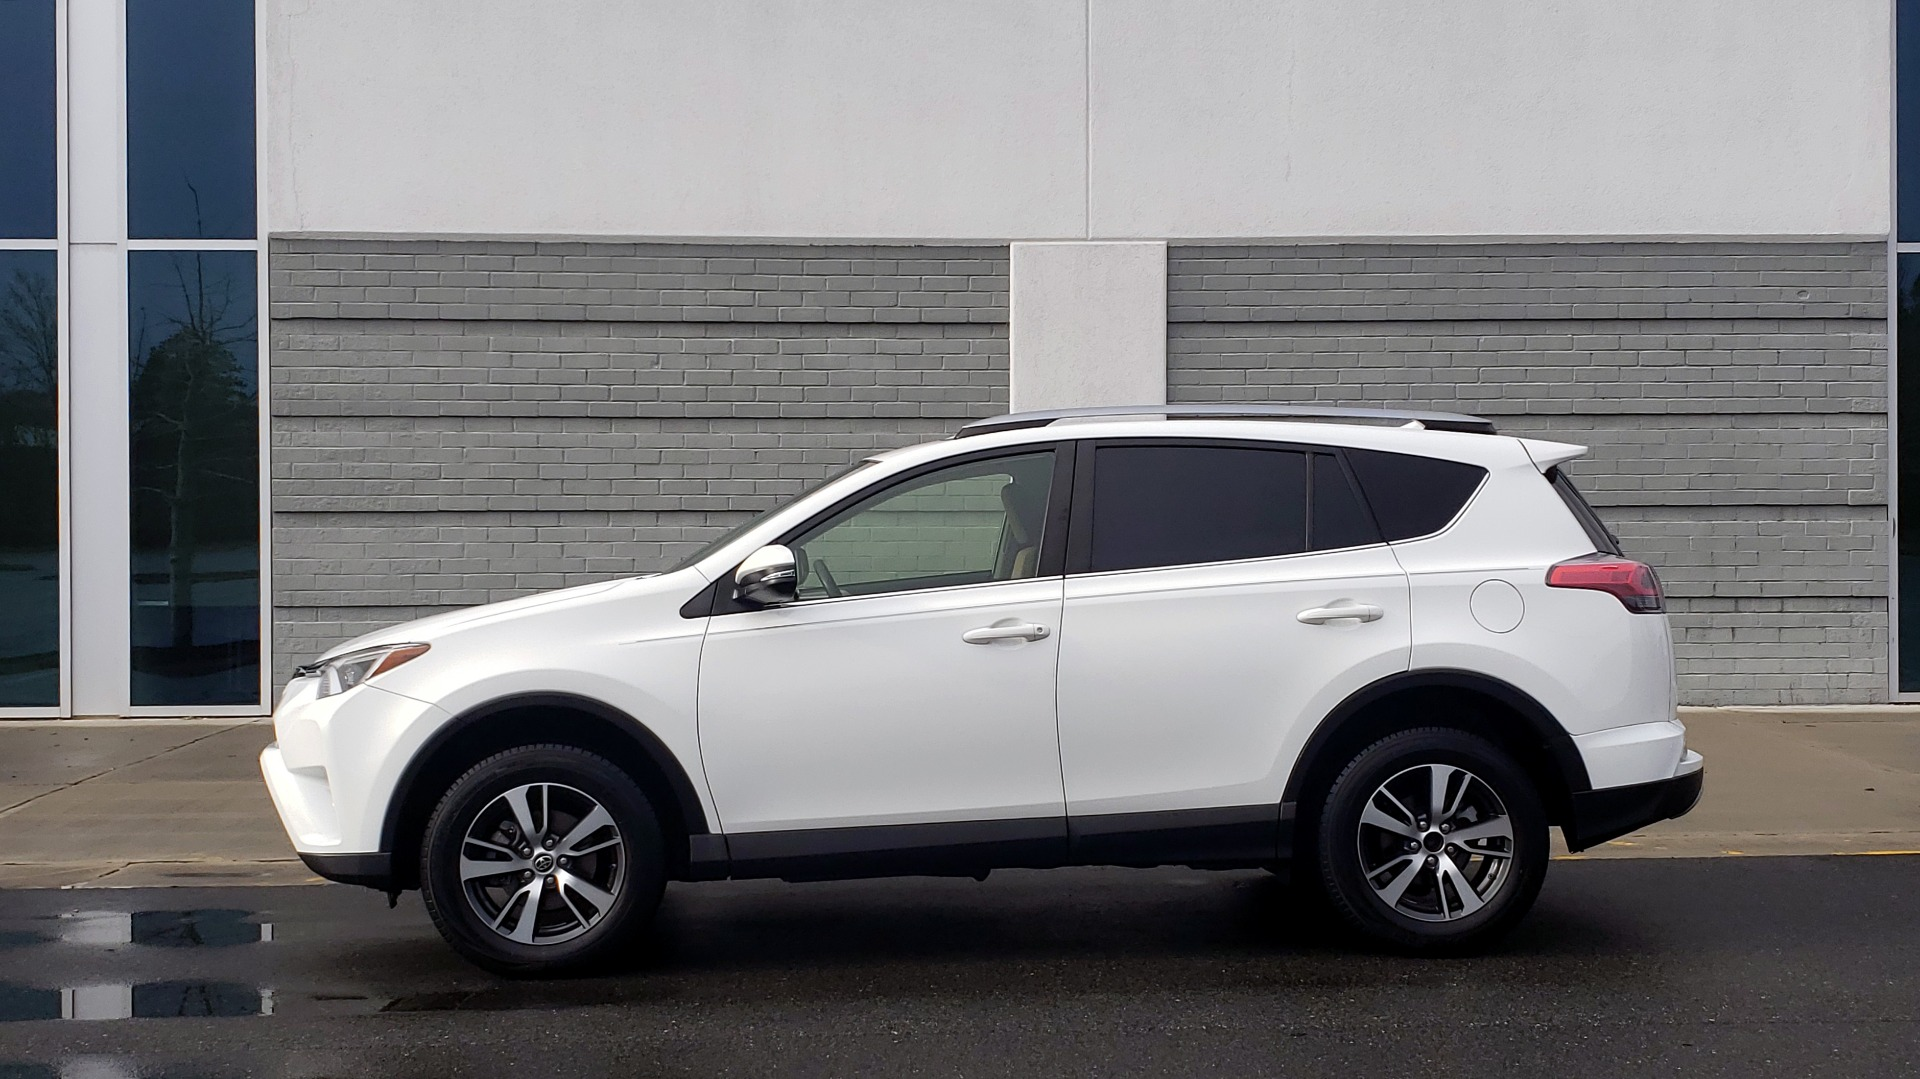 Used 2018 Toyota RAV4 XLE / FWD / 4-CYL / 6-SPD AUTO / BSM / REAR CROSS TRAFFIC ALERT for sale Sold at Formula Imports in Charlotte NC 28227 4